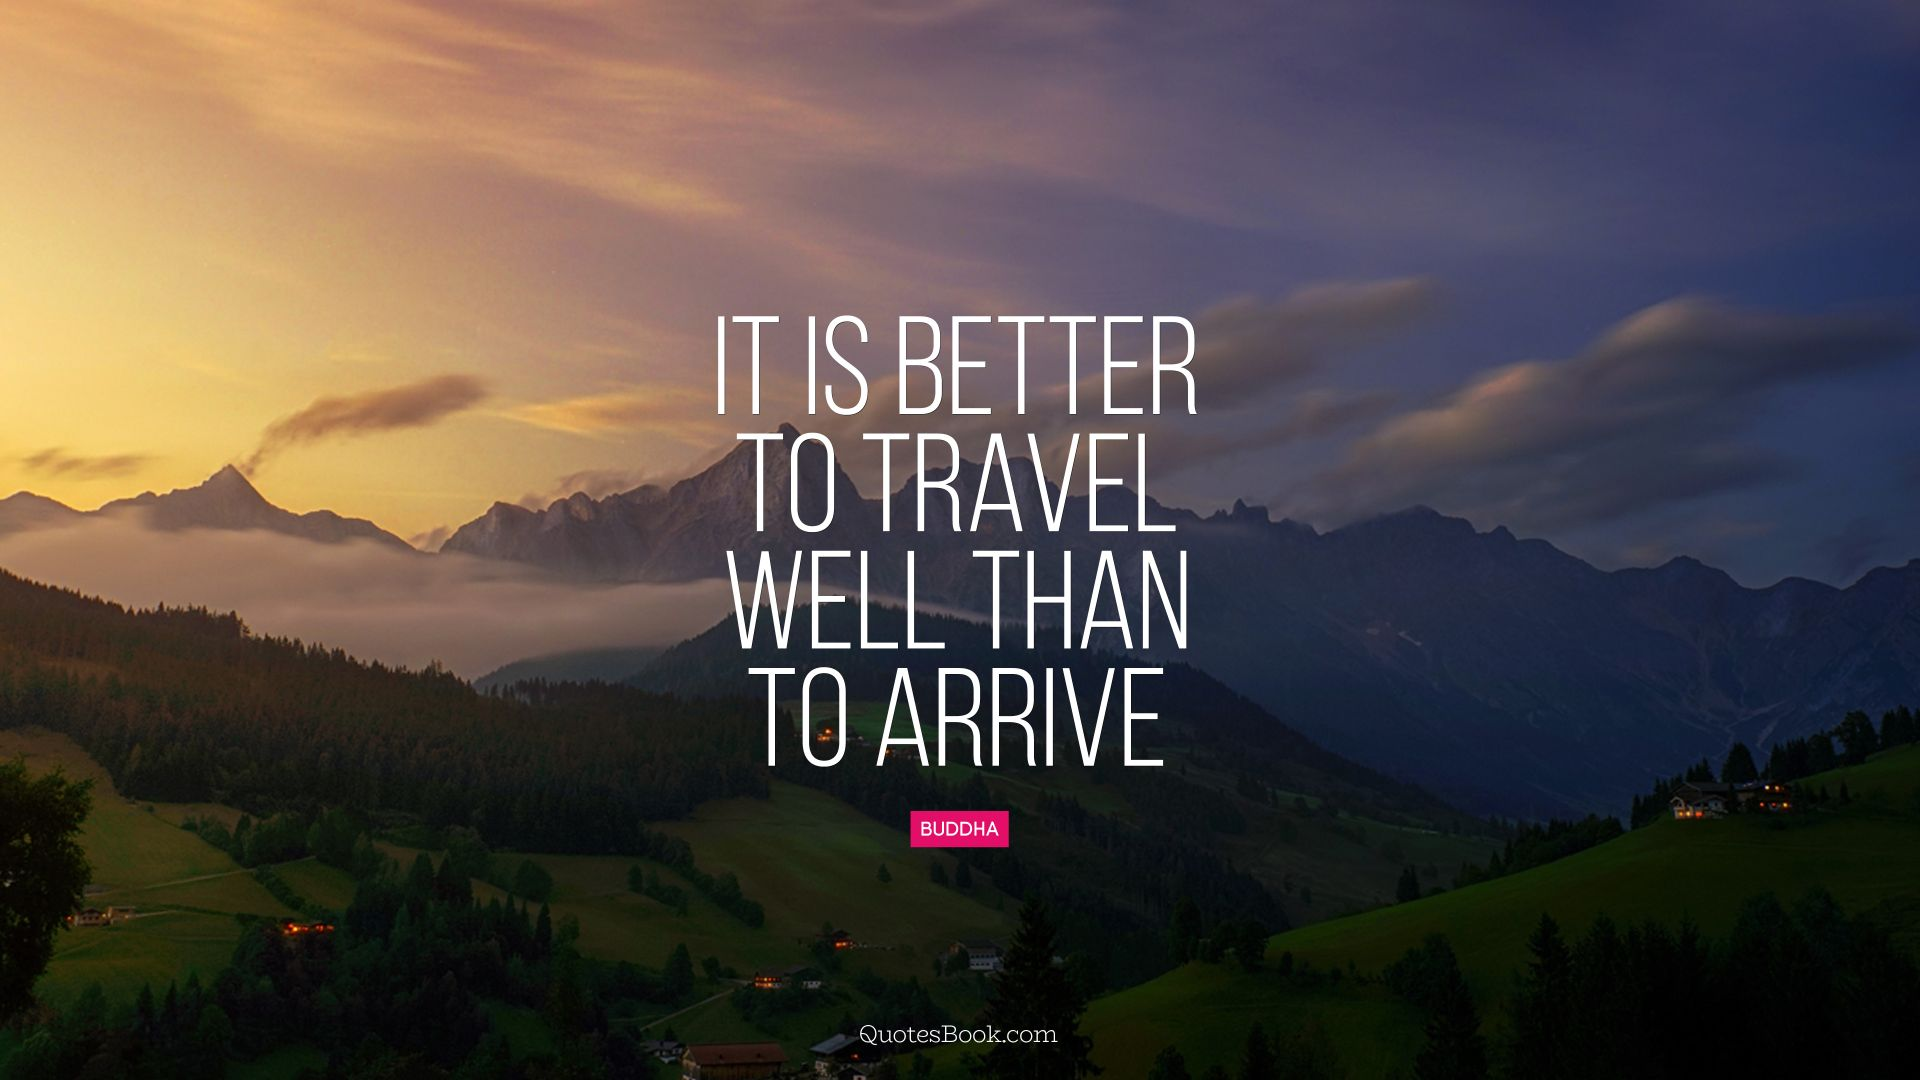 It is better to travel well than to arrive. - Quote by Buddha